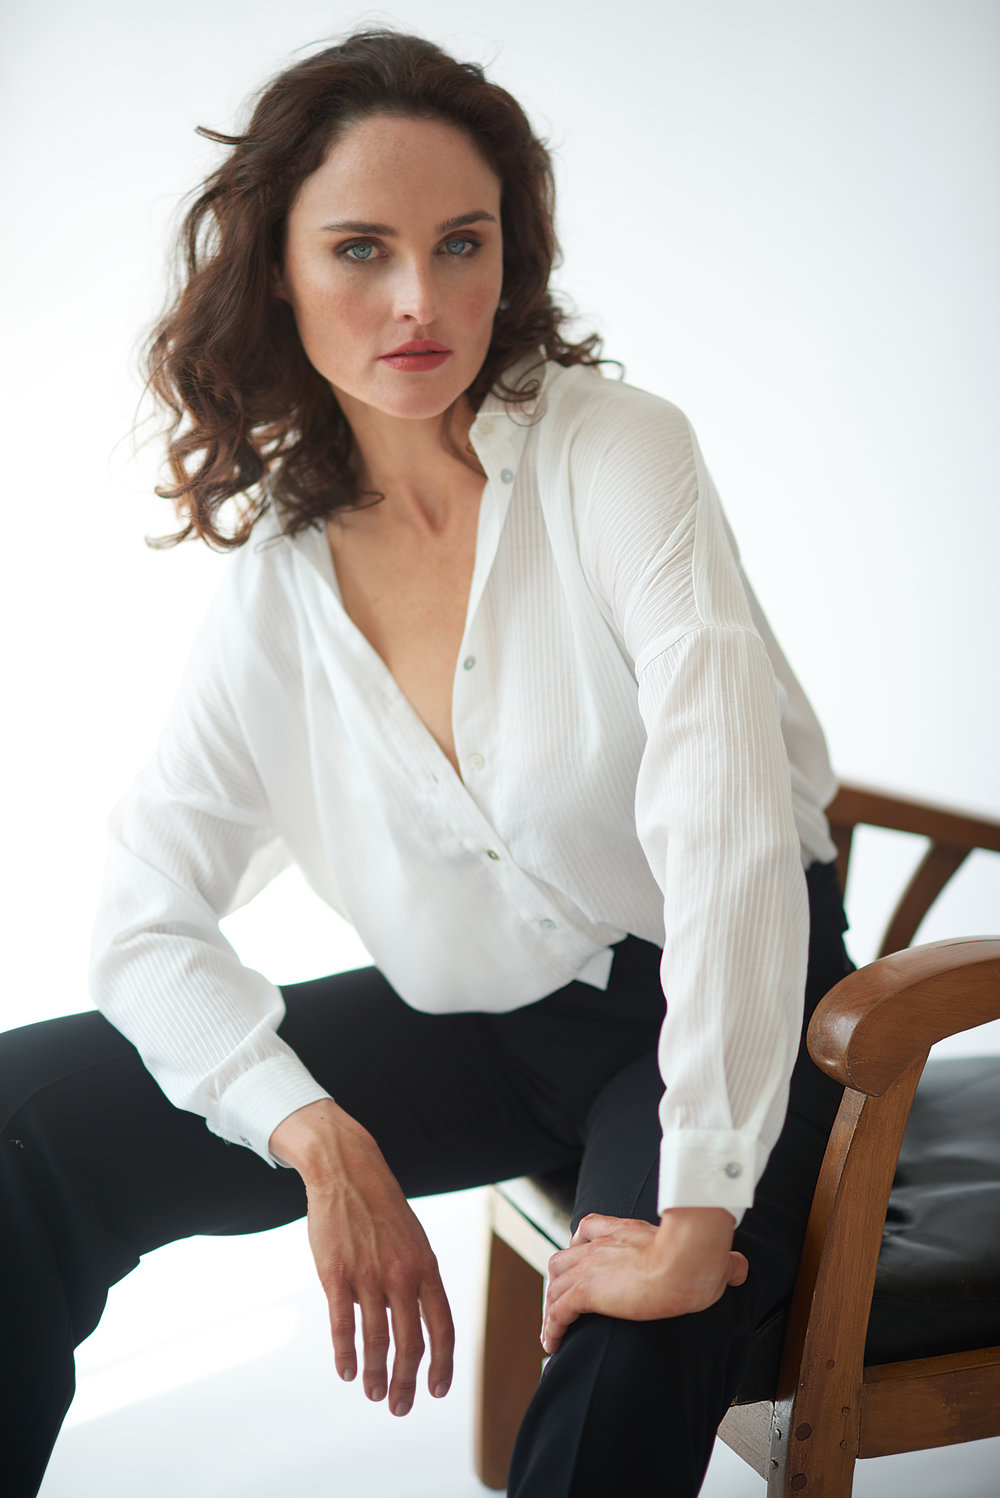 Professional Corporate for a woman with editorial look